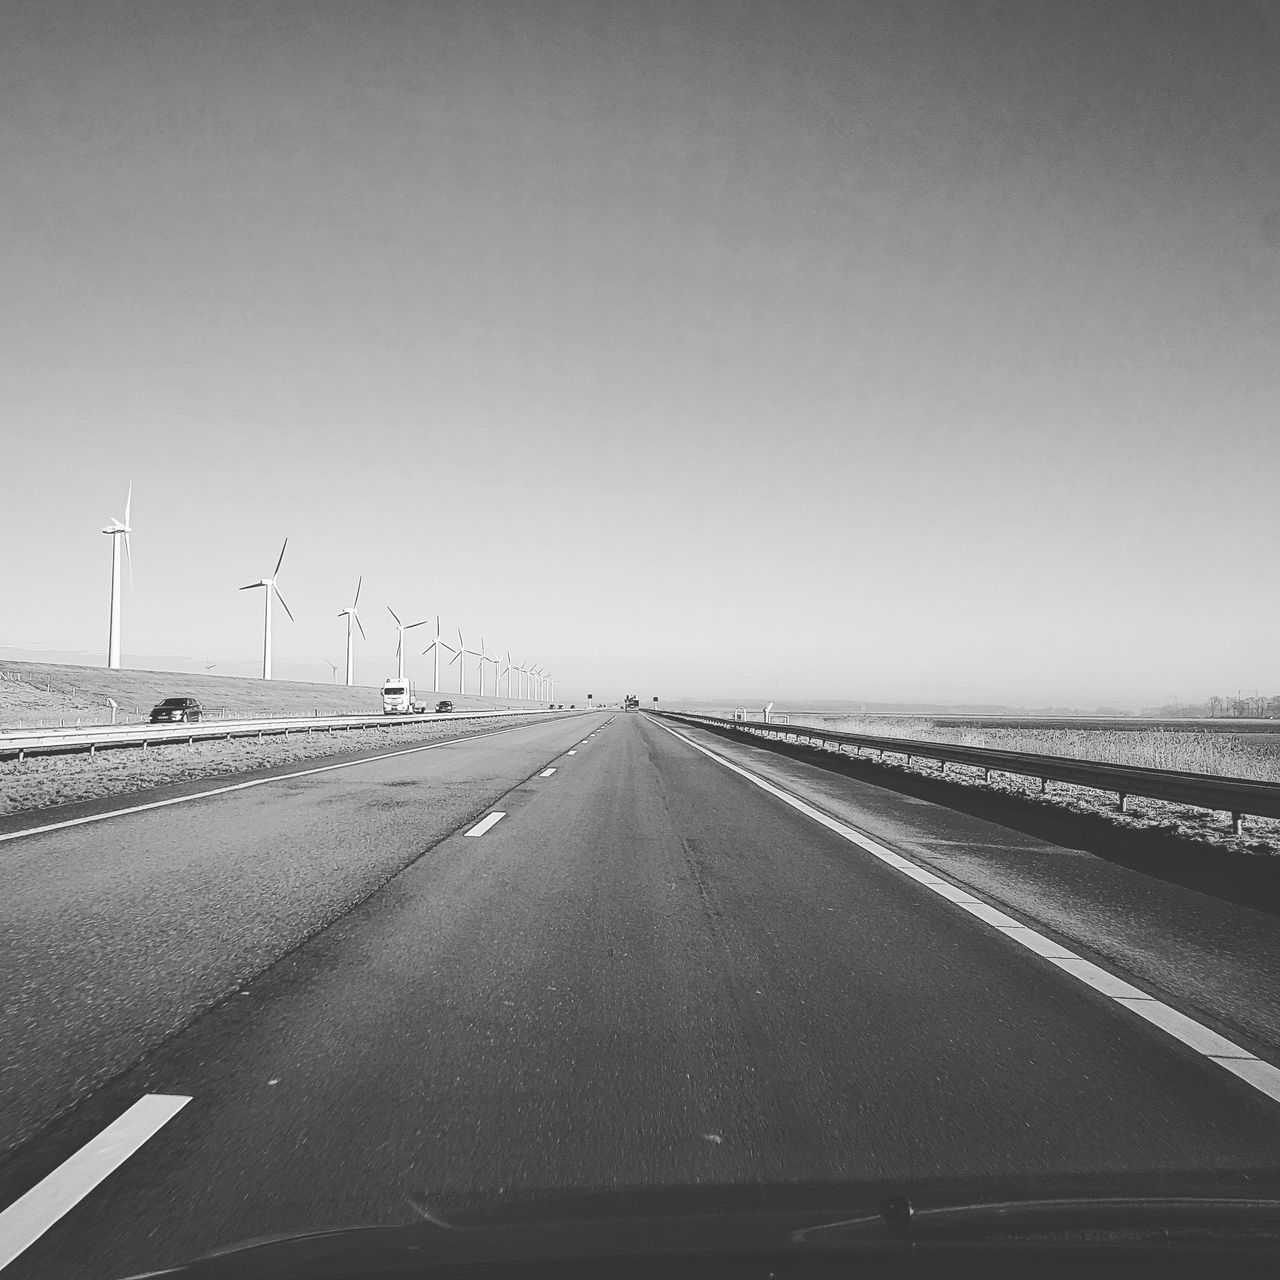 Flevoland Highway Transportation No People Highwayphotography 90mph Blackandwhite Blackandwhite Photography Ford Ford Focus Cruisin Netherlands Roadtrip Road To Nowhere Roadside Shots Windmill Windmils